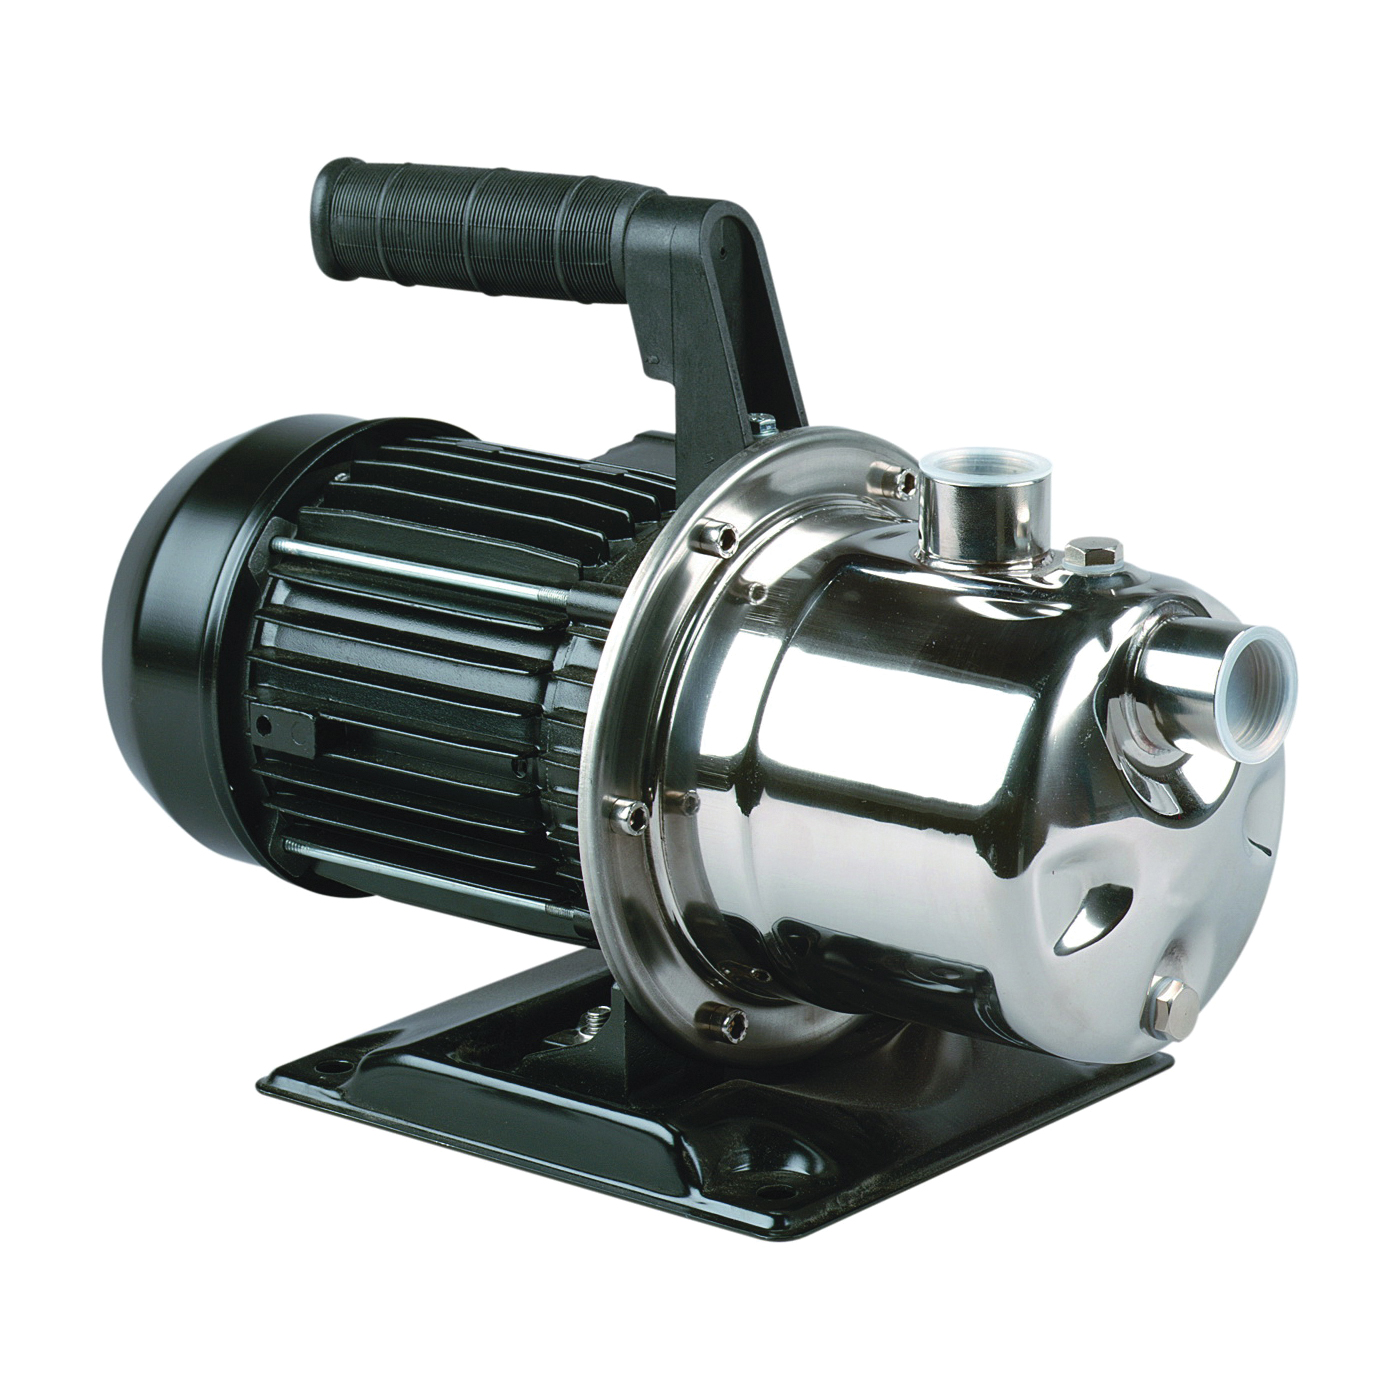 Picture of Sta-Rite Simer 2825SS Utility Pump, 1-Phase, 9.8 A, 115 V, 1 hp, 1 in Outlet, 10 gpm, Stainless Steel